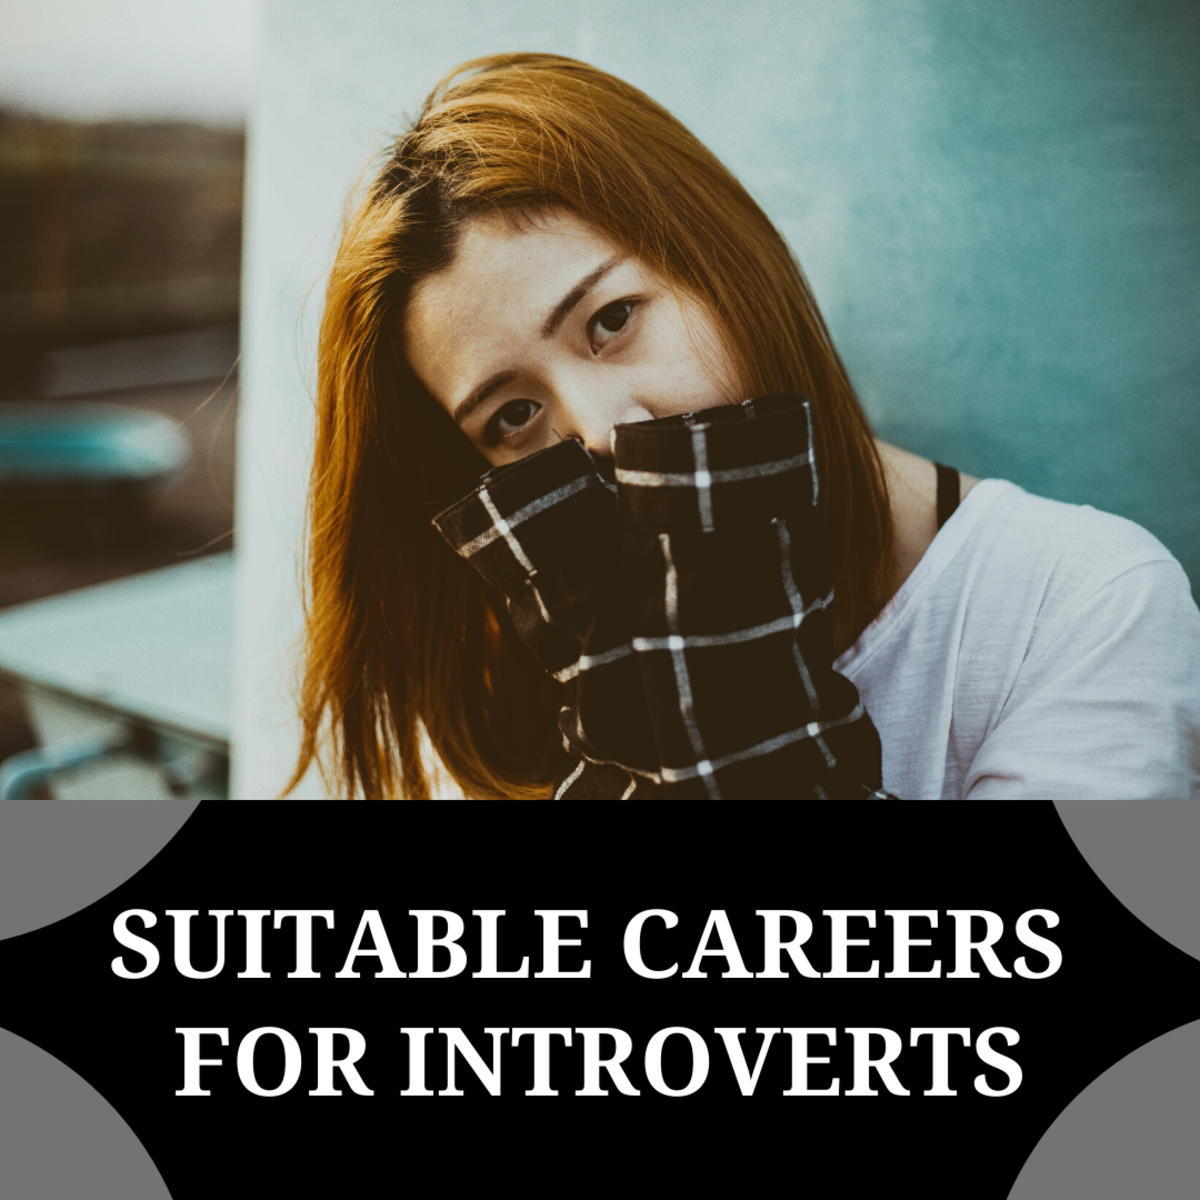 Suitable Careers for Introverts